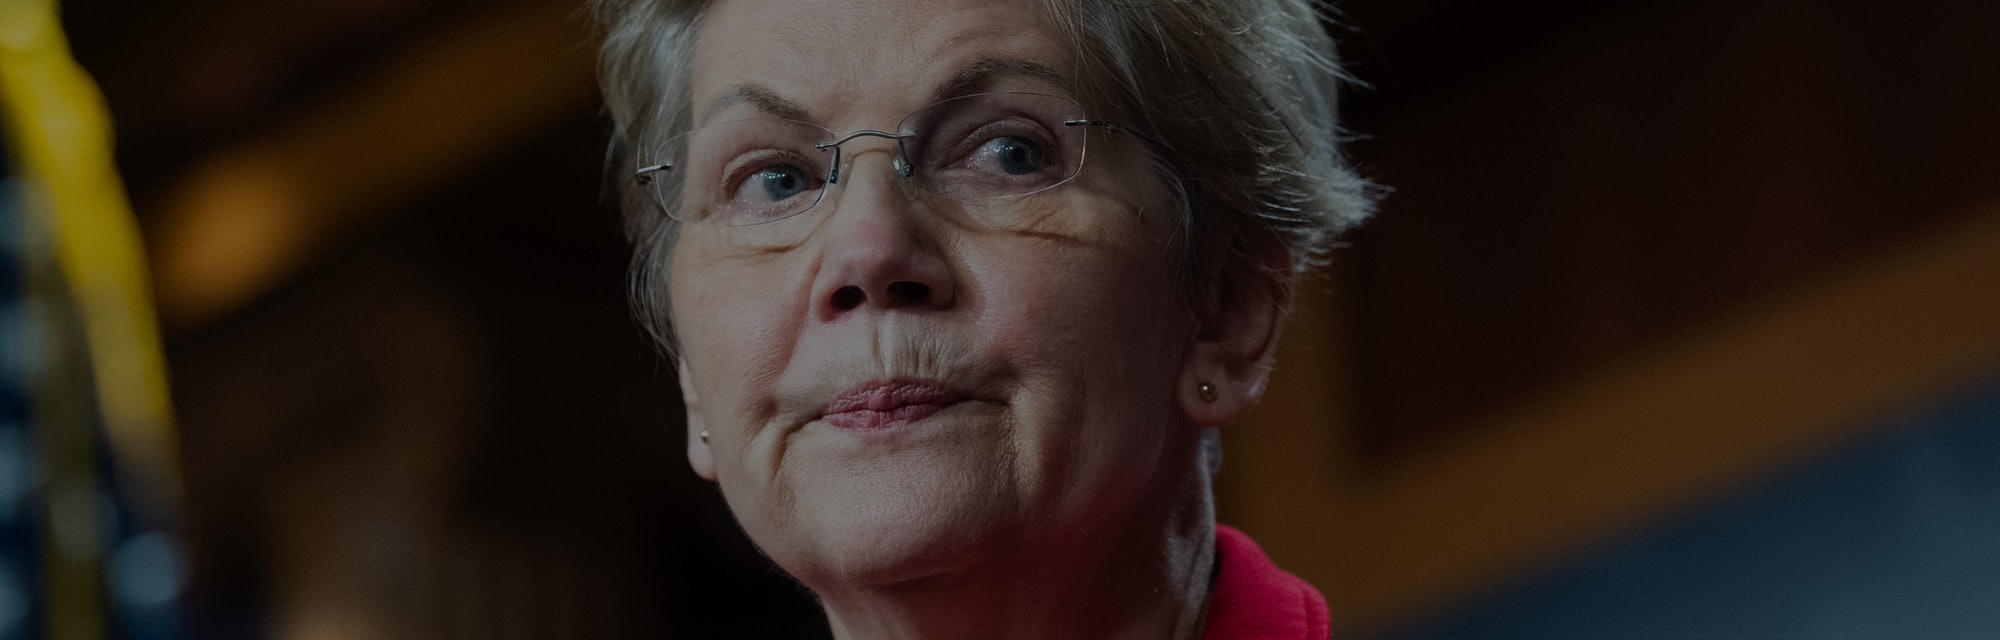 UNITED STATES - MARCH 01: Sen. Elizabeth Warren, D-Mass., conducts a news conference in the Capitol to introduce the Ultra-Millionaire Tax Act which would tax high net worth households on Monday, March 1, 2021. Reps. Pramila Jayapal, D-Wash., and Brendan Boyle, D-Pa., also attended. (Photo By Tom Williams/CQ-Roll Call, Inc via Getty Images)